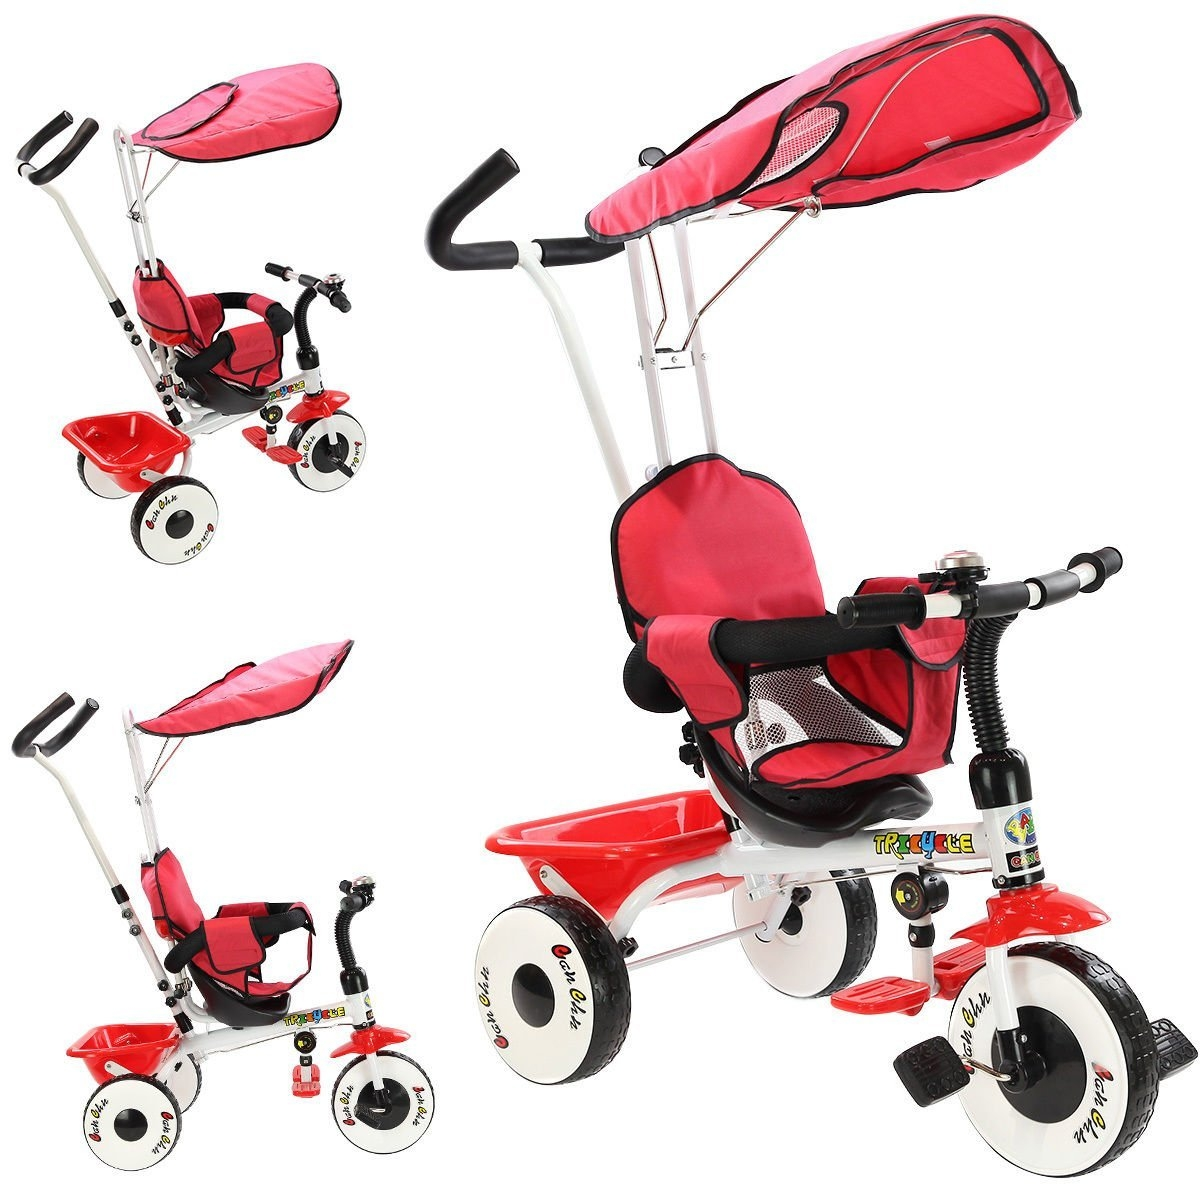 New MTN-G 4-In-1 Kids Baby Stroller Tricycle Training Learning Toy Bike w/ Canopy Basket-Red